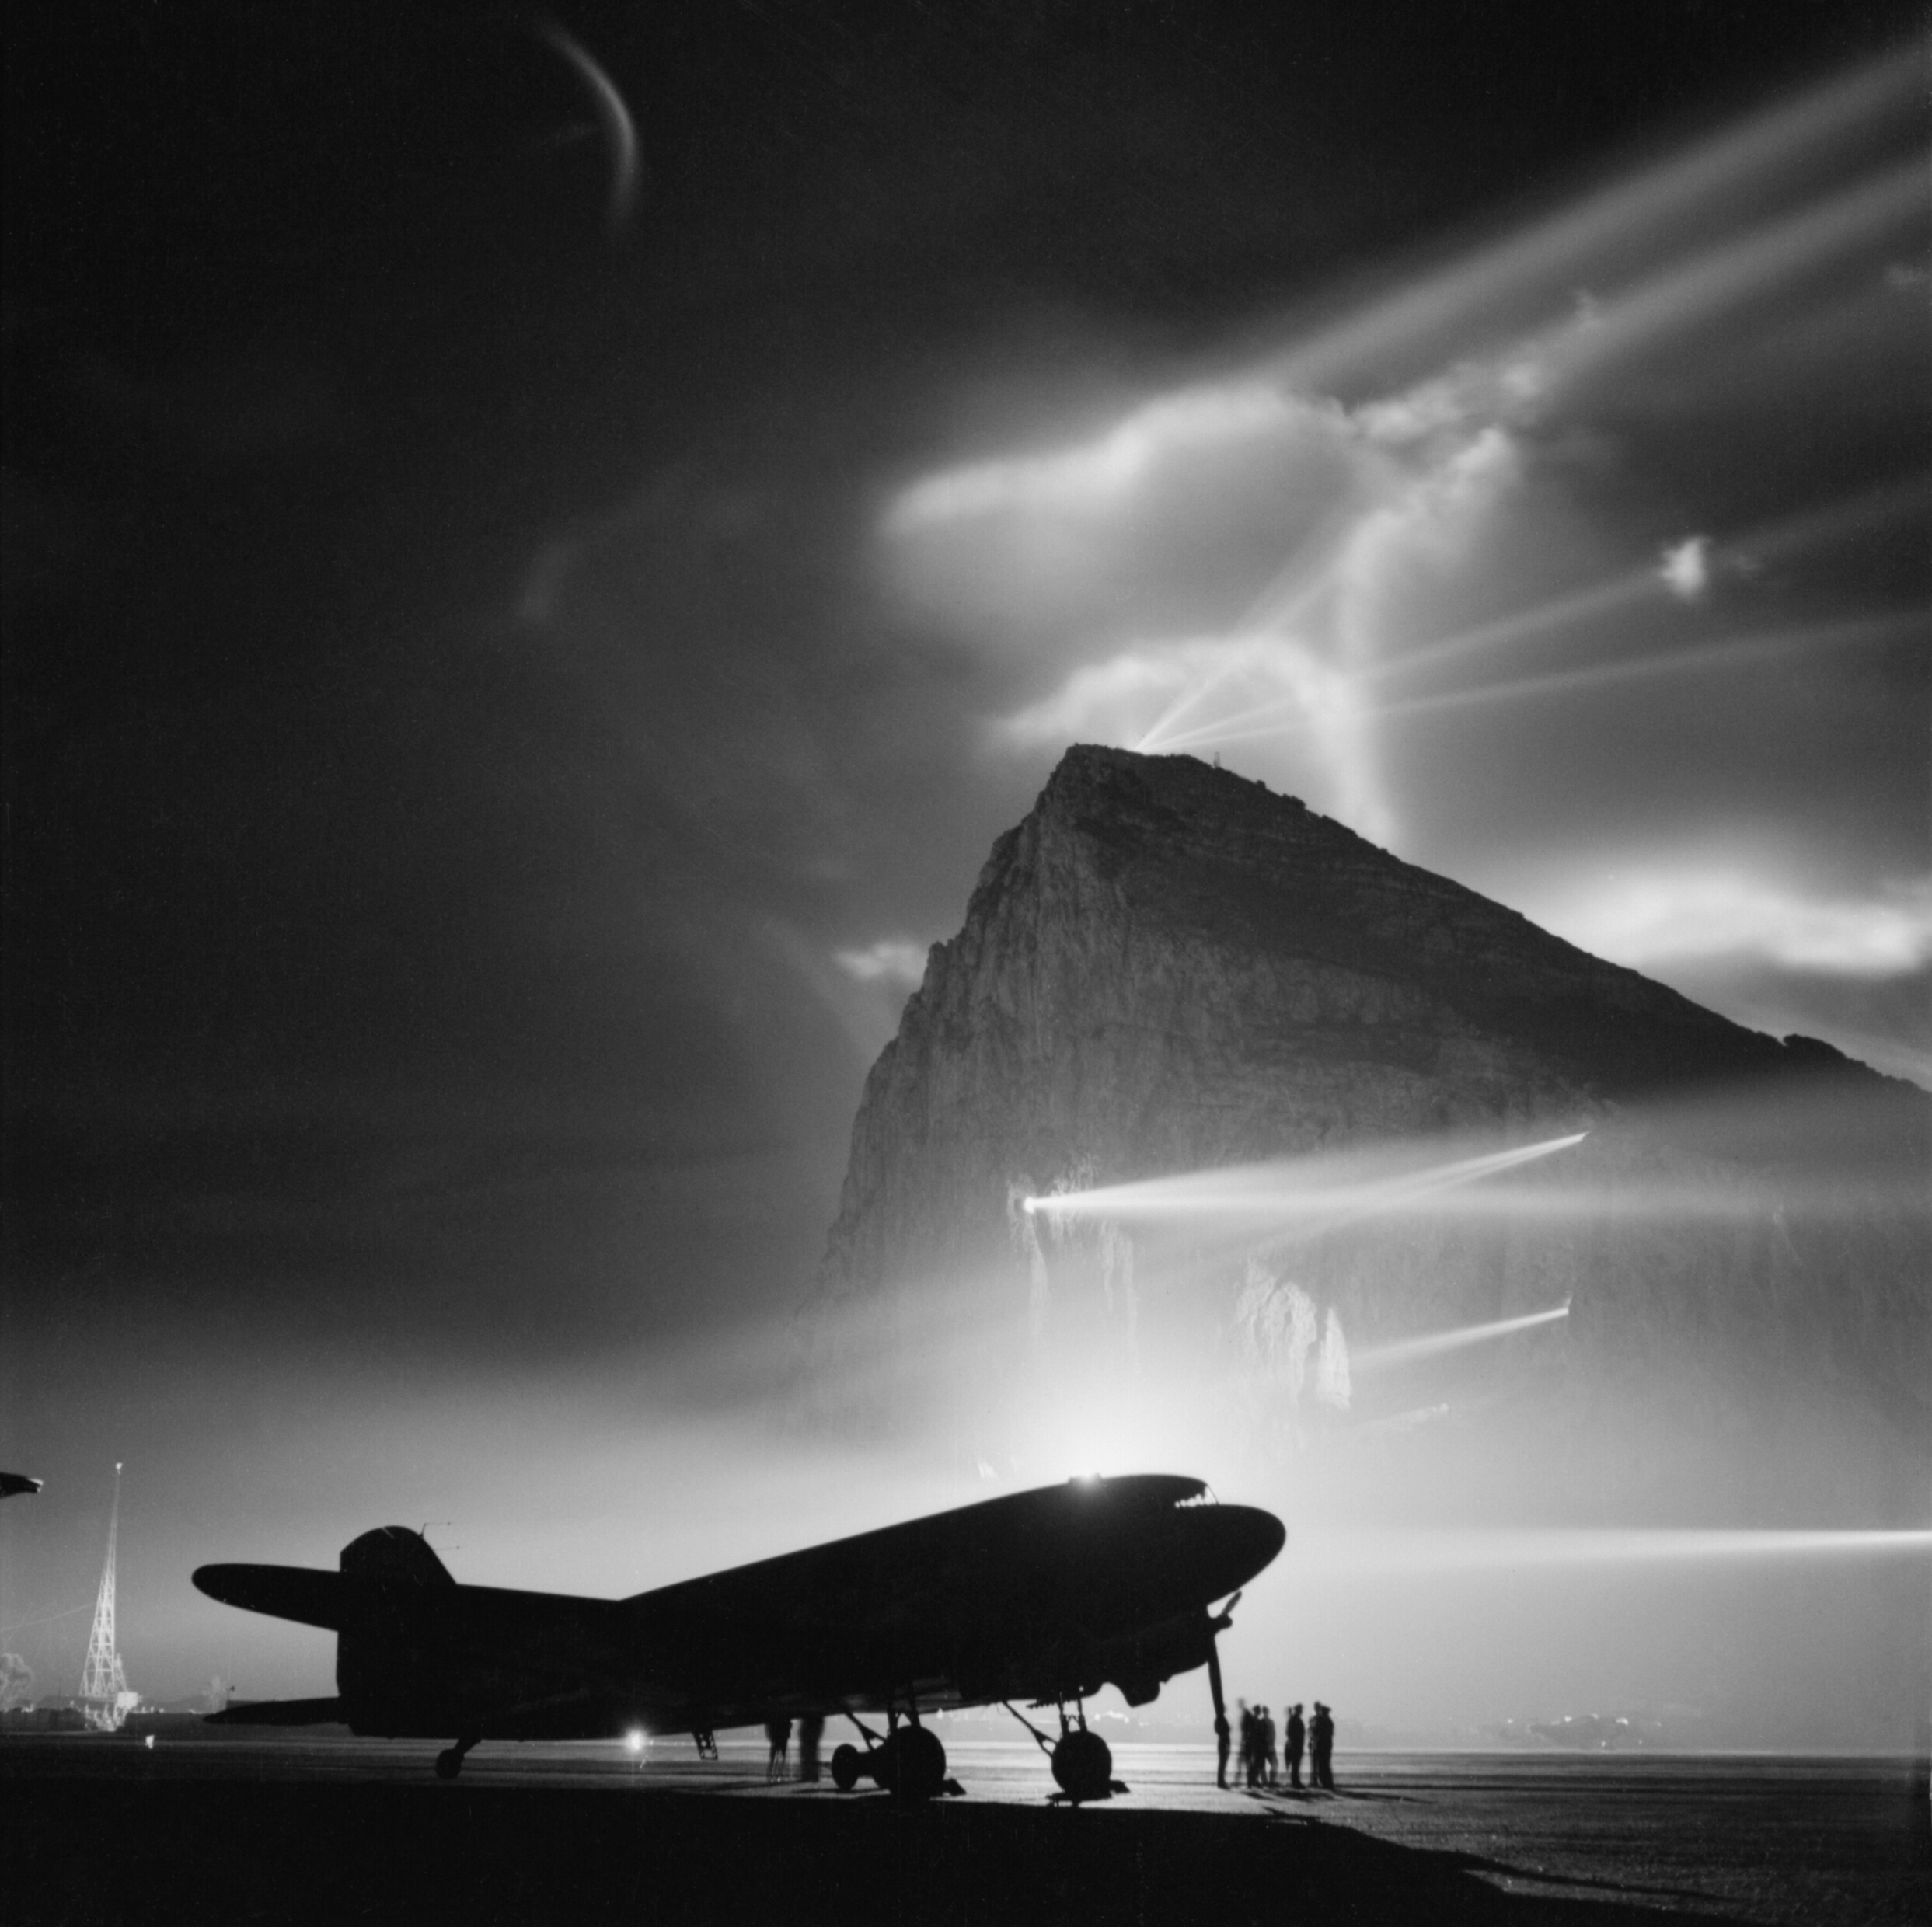 Douglas_DC-3_of_BOAC_at_Gibraltar,_silho